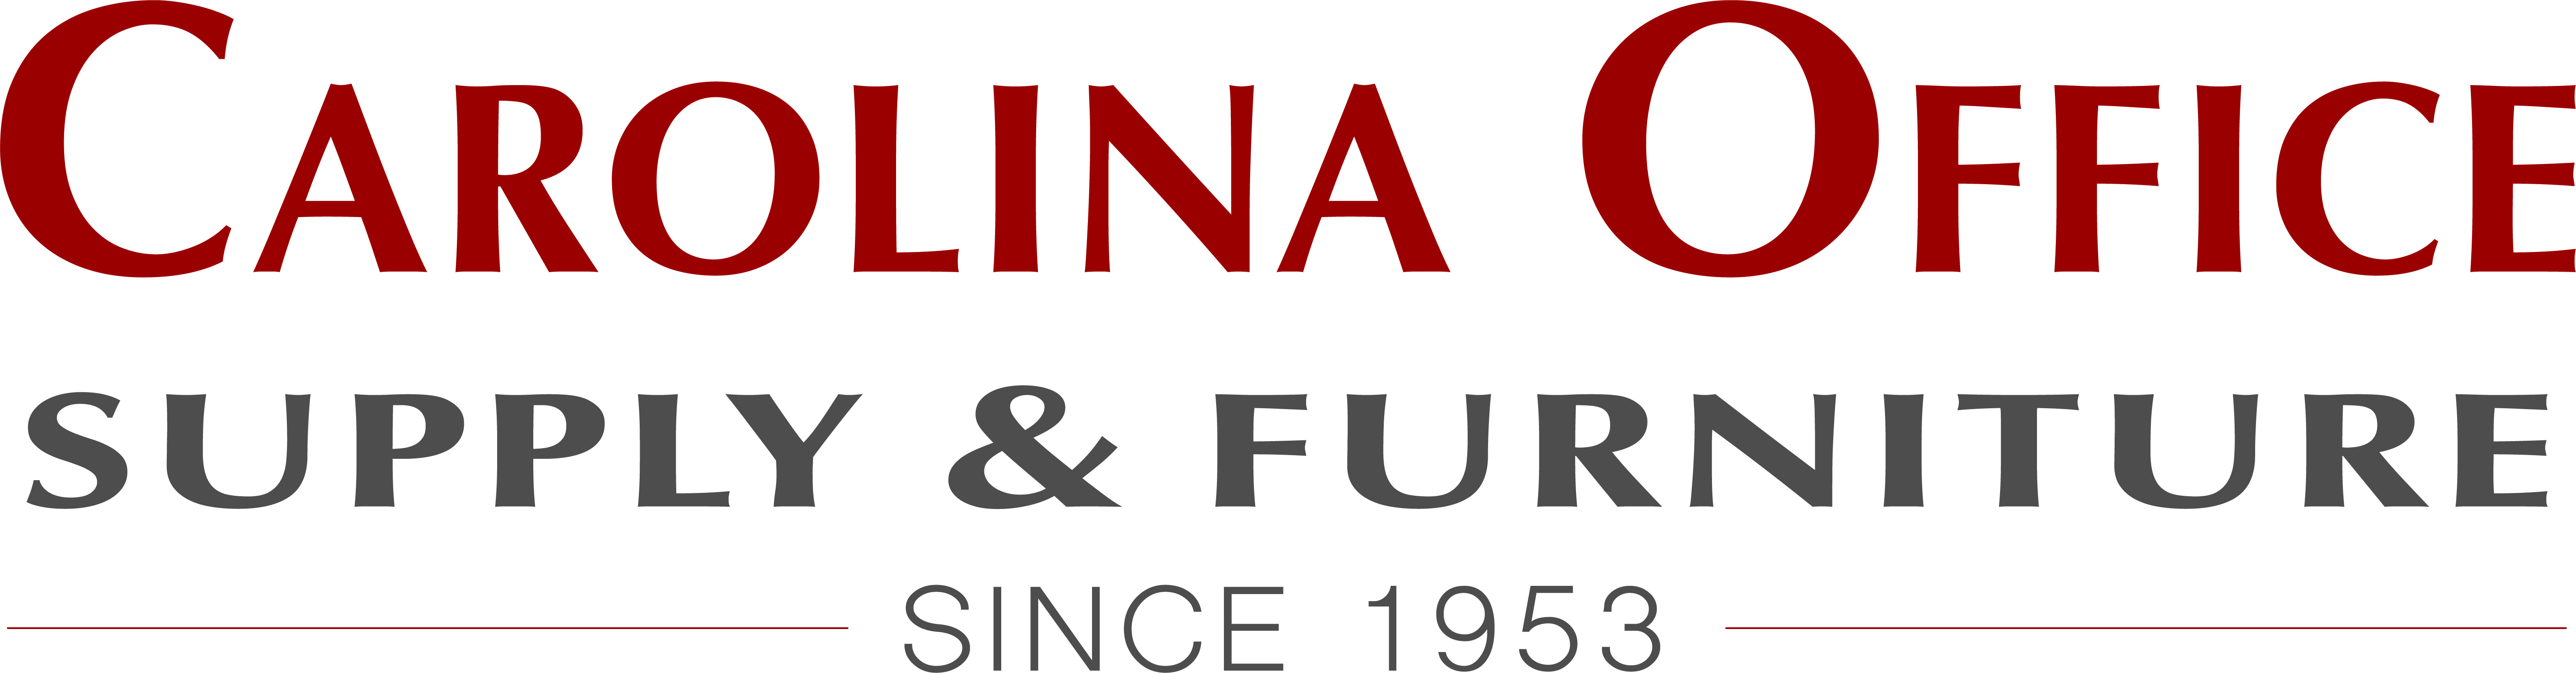 Carolina Office Supply and Furniture